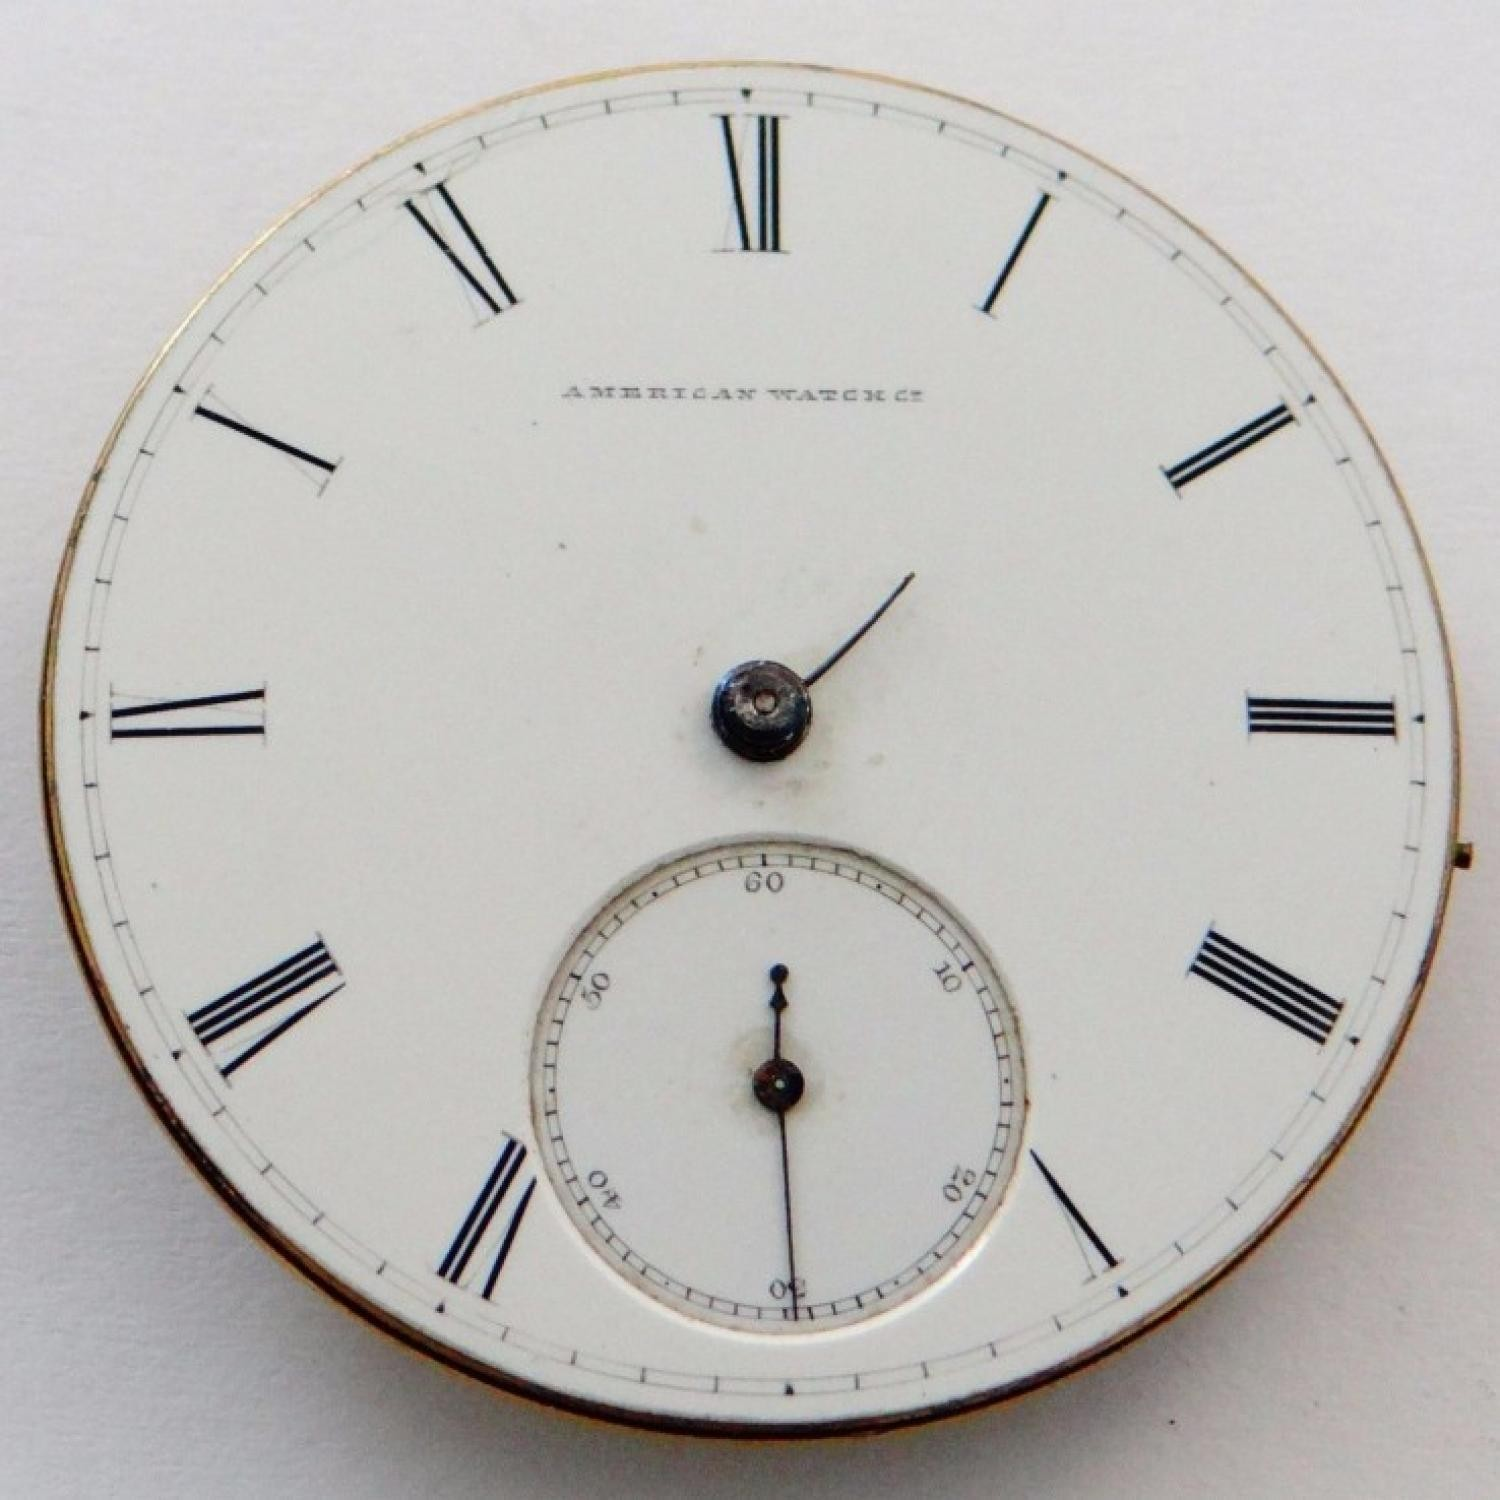 Image of Waltham A.T. & Co. #280948 Dial